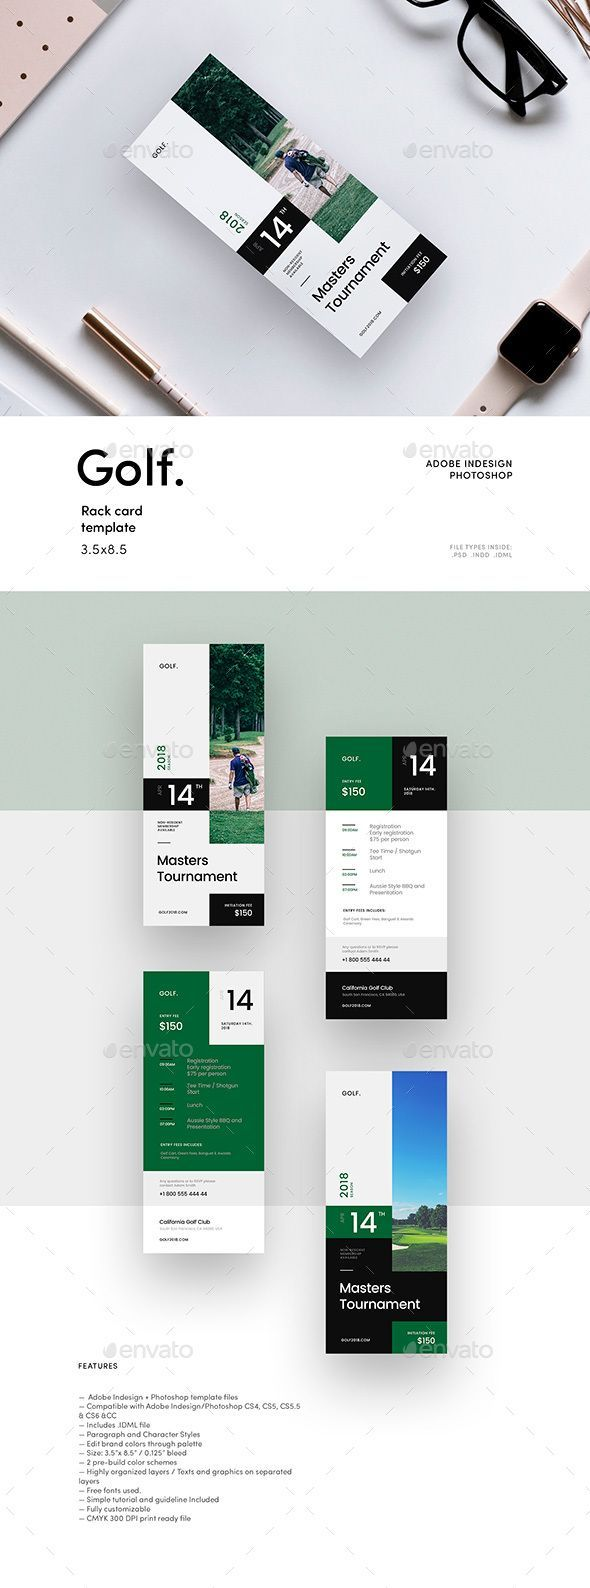 Golf Tournament Rack Card Template Clean And Simple Golf Rack Card Template Perfectly Suits For Golf Tournament Rack Card Templates Rack Card Golf Tournament